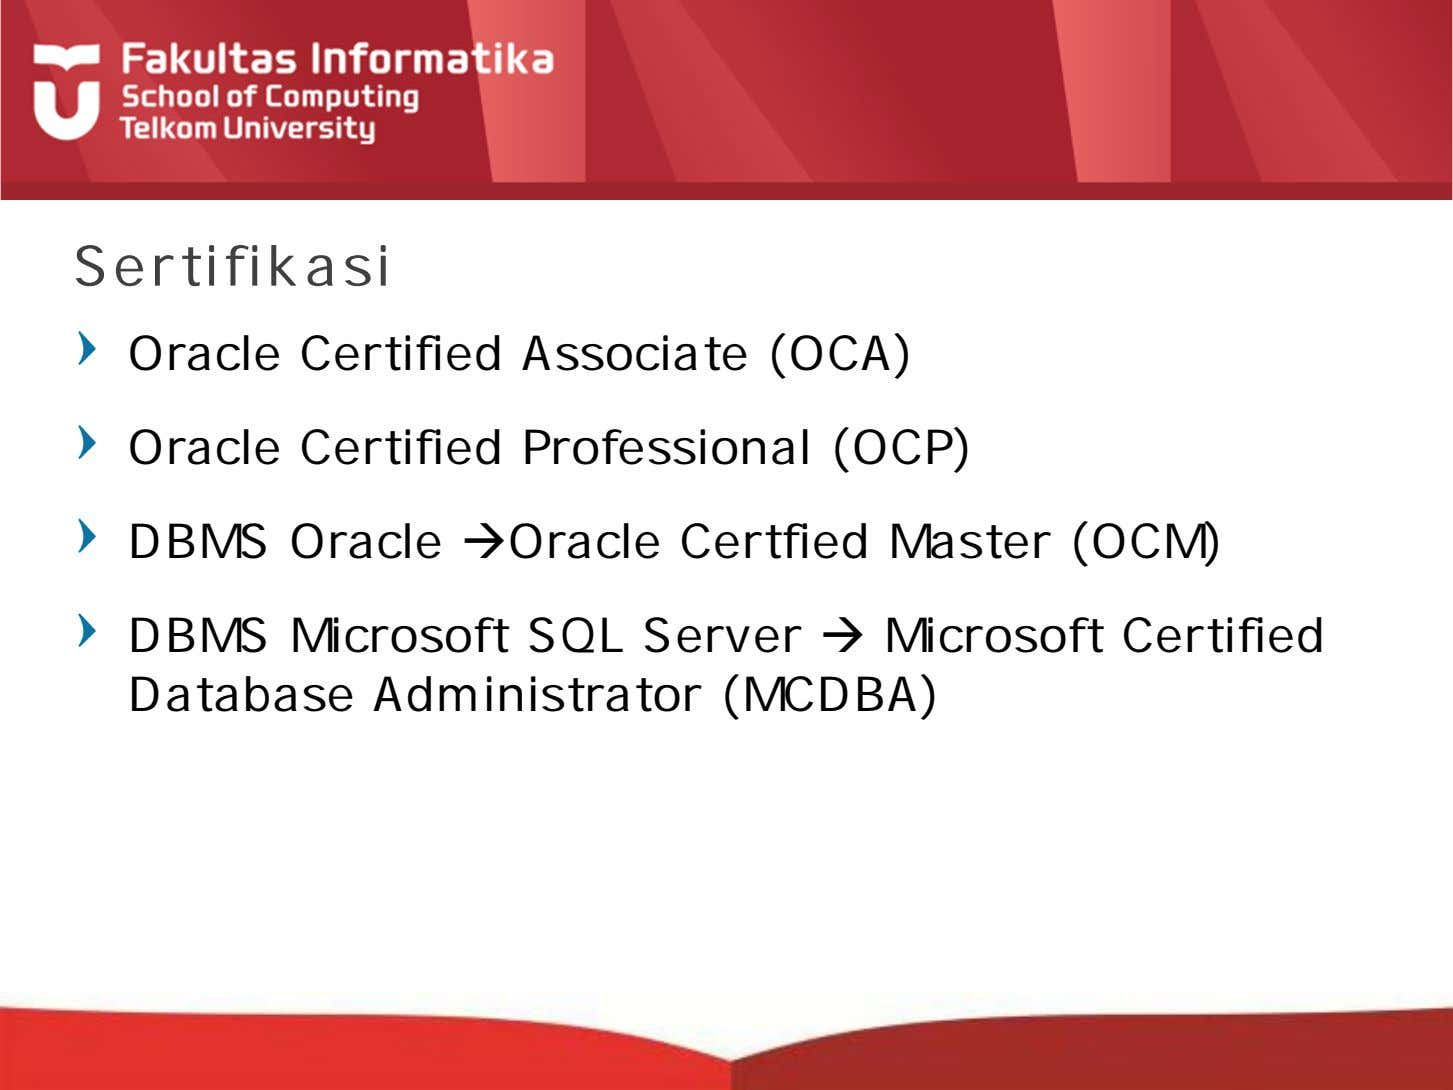 Sertifikasi Oracle Certified Associate (OCA) Oracle Certified Professional (OCP) DBMS Oracle Oracle Certfied Master